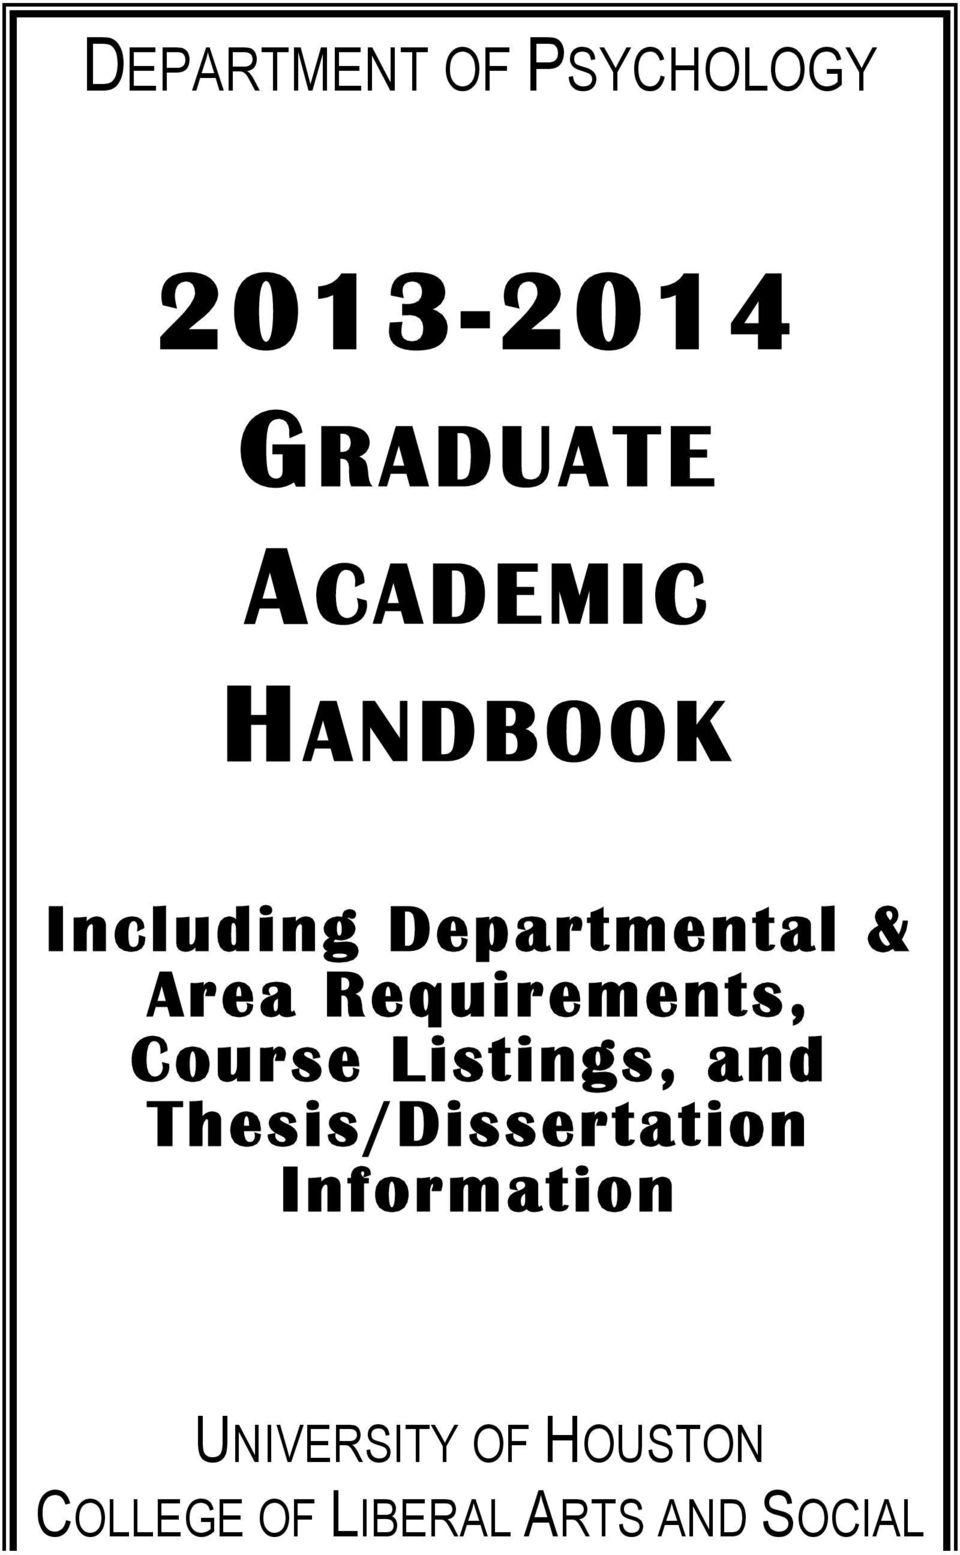 Course Listings, and Thesis/Dissertation Information